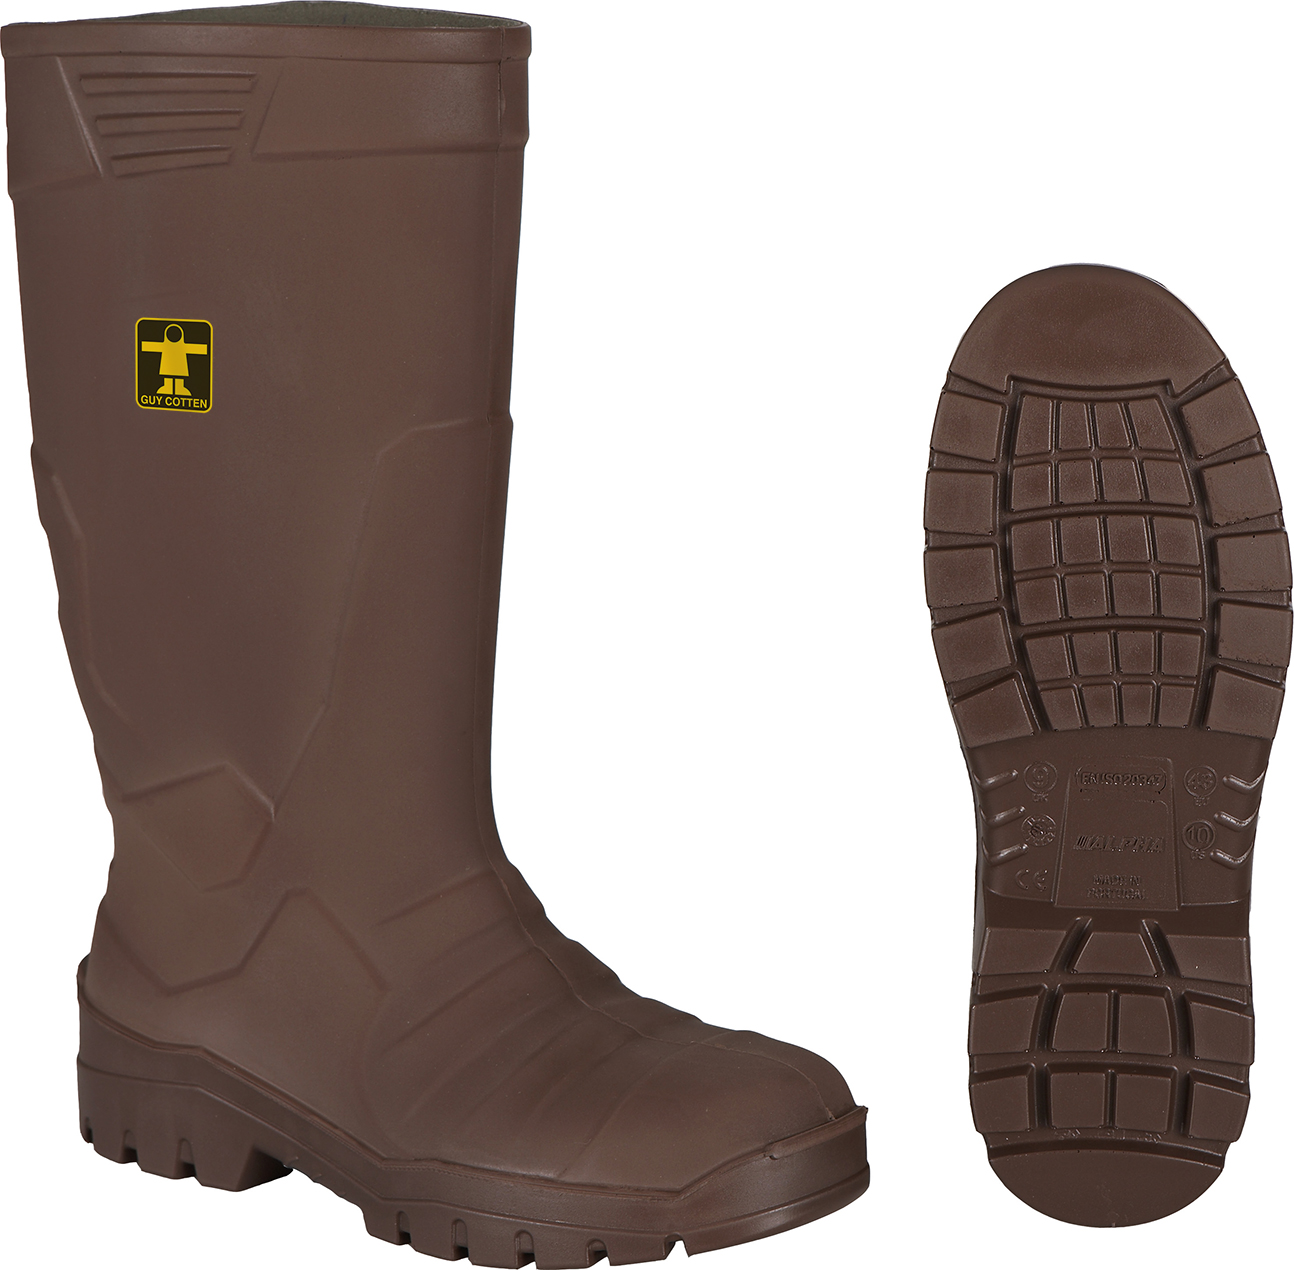 GC ULTRALITE BOOTS